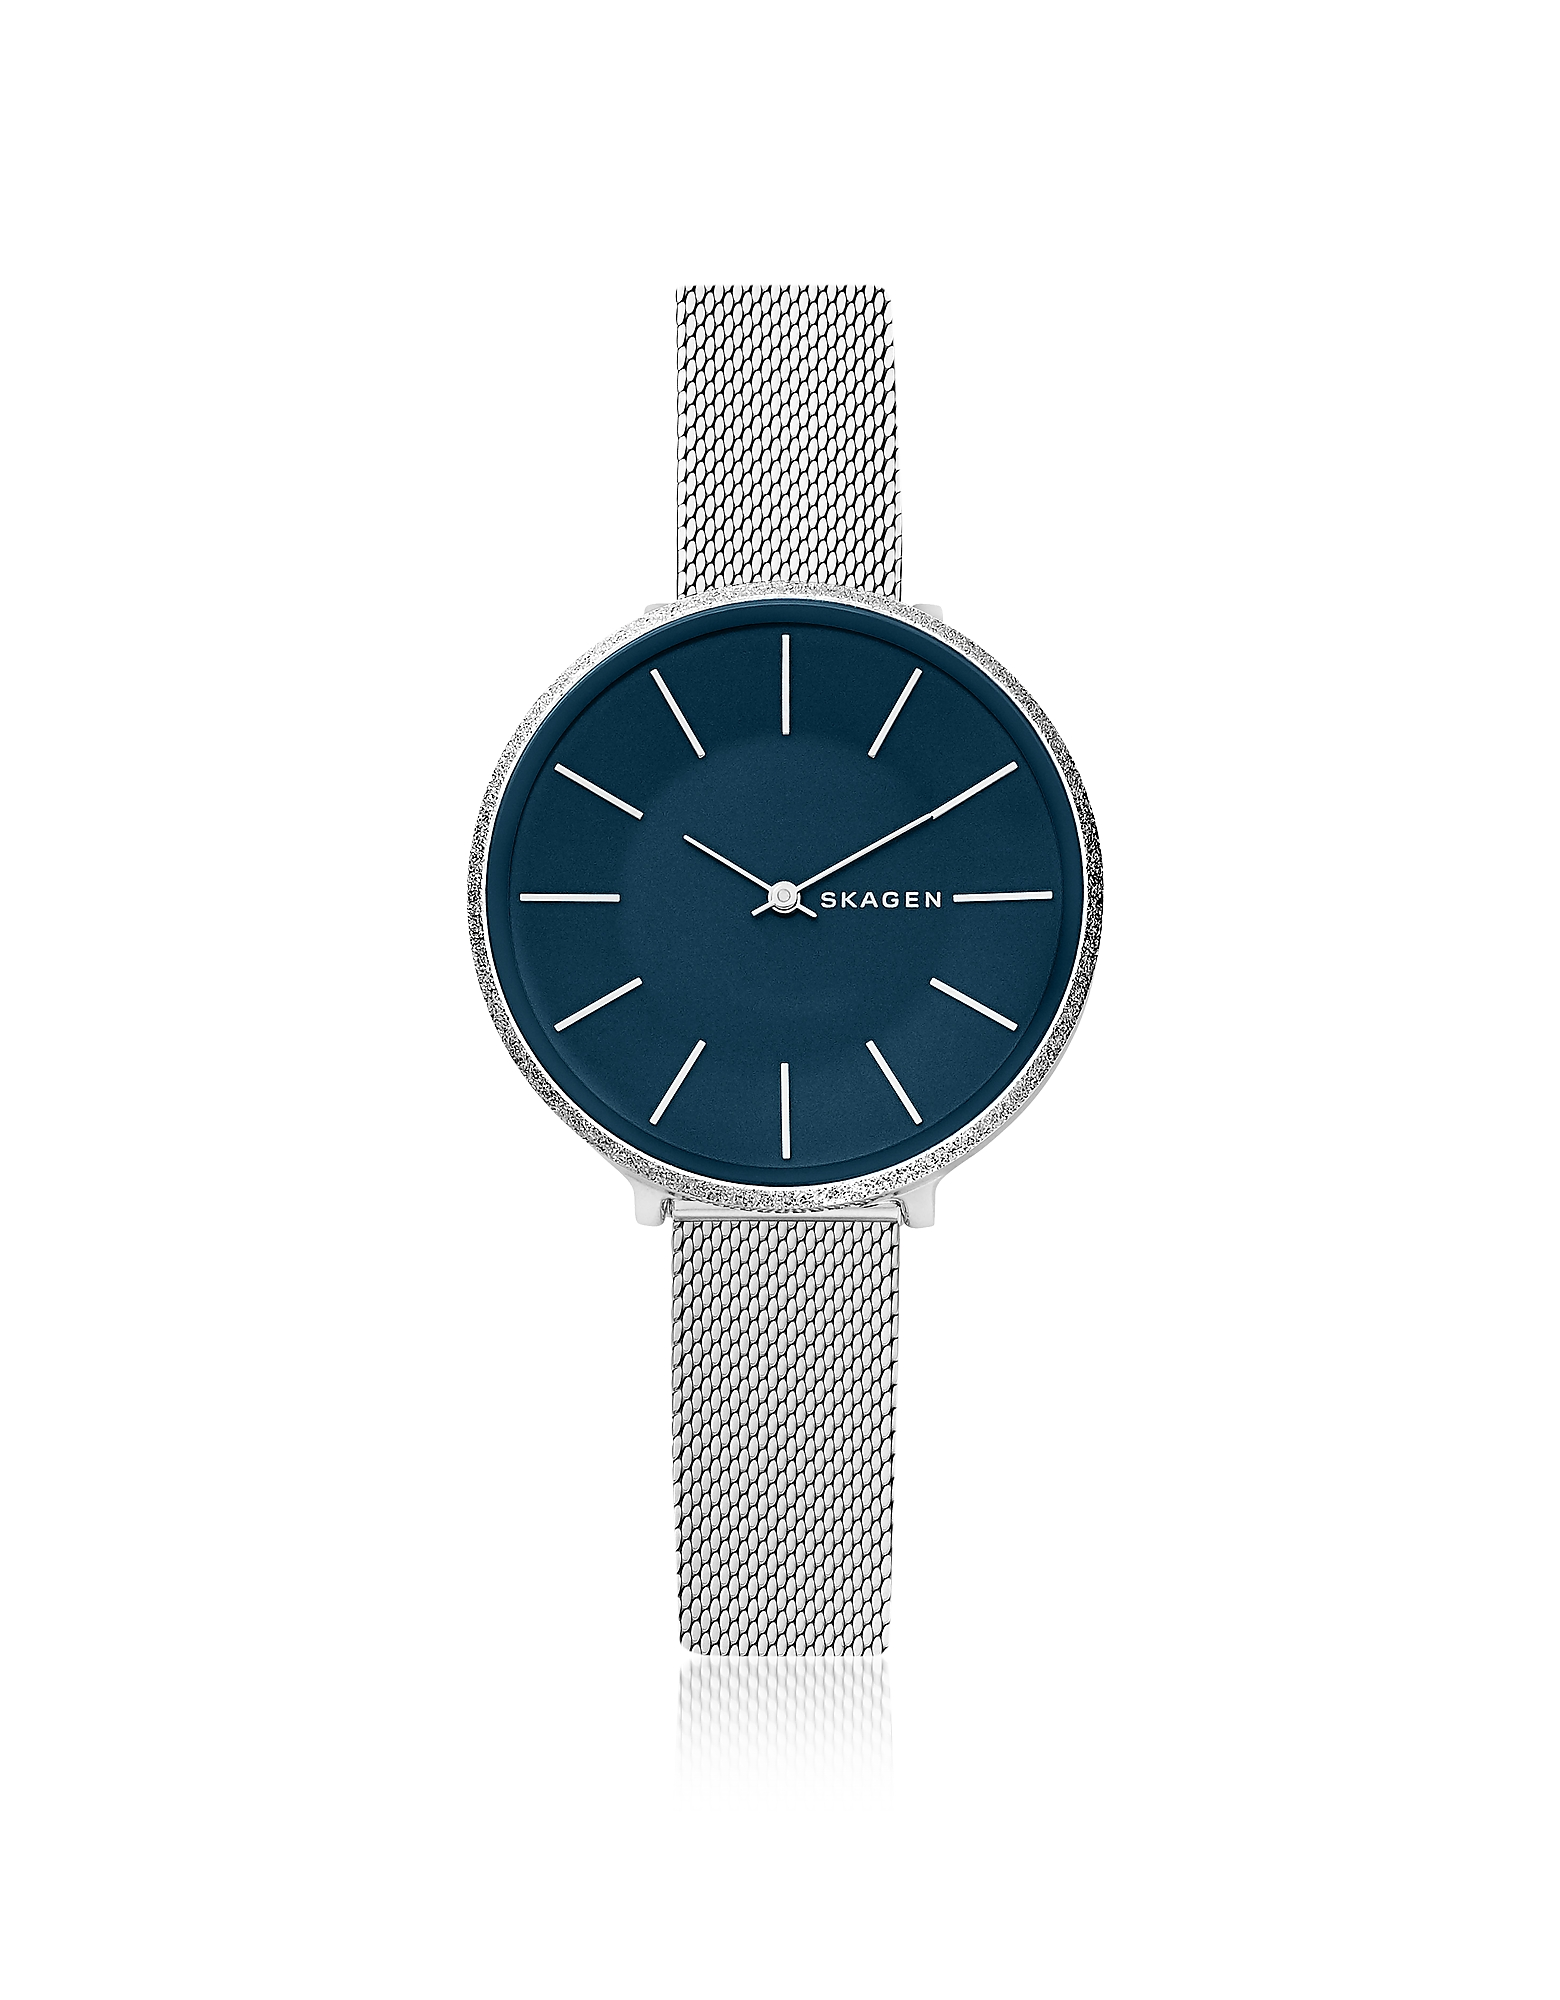 Skagen Women's Watches, SKW2725 Karolina Women's Watch